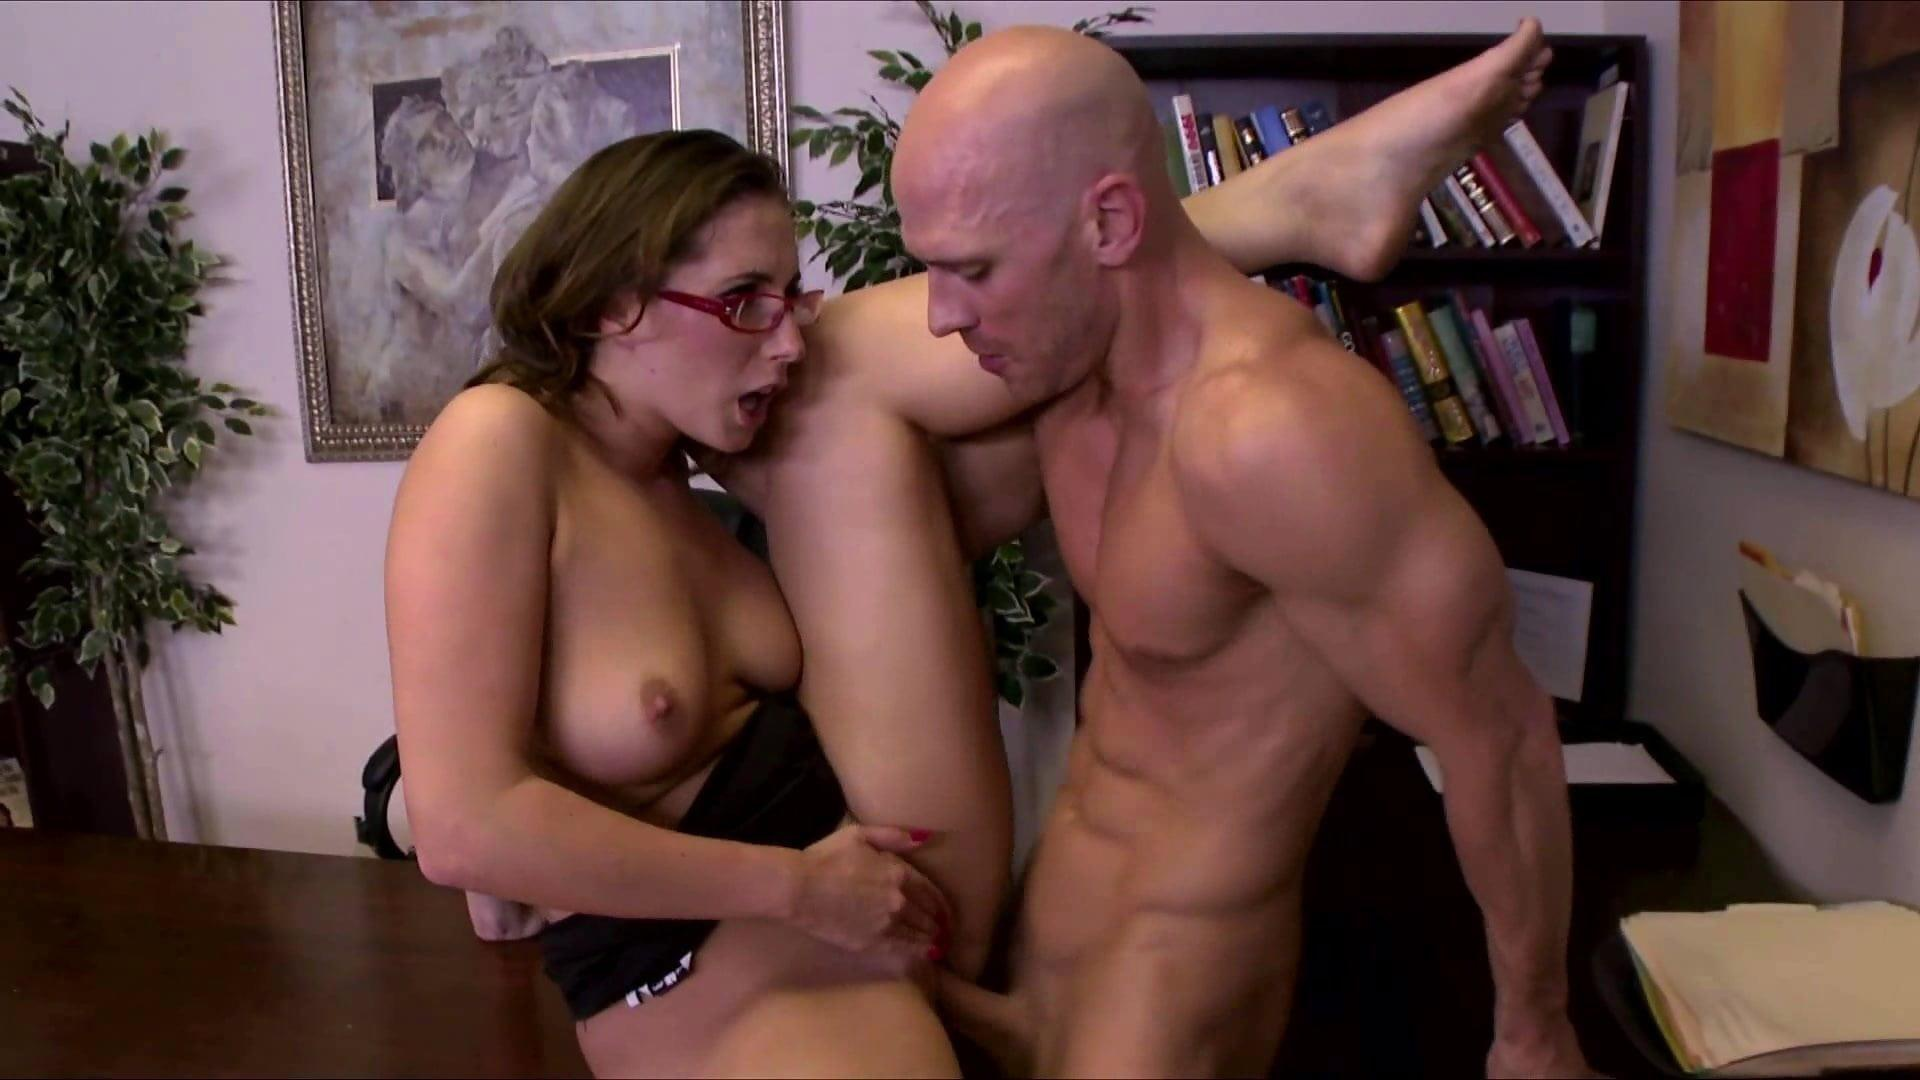 Showing busty anal sex cunt hairy mature